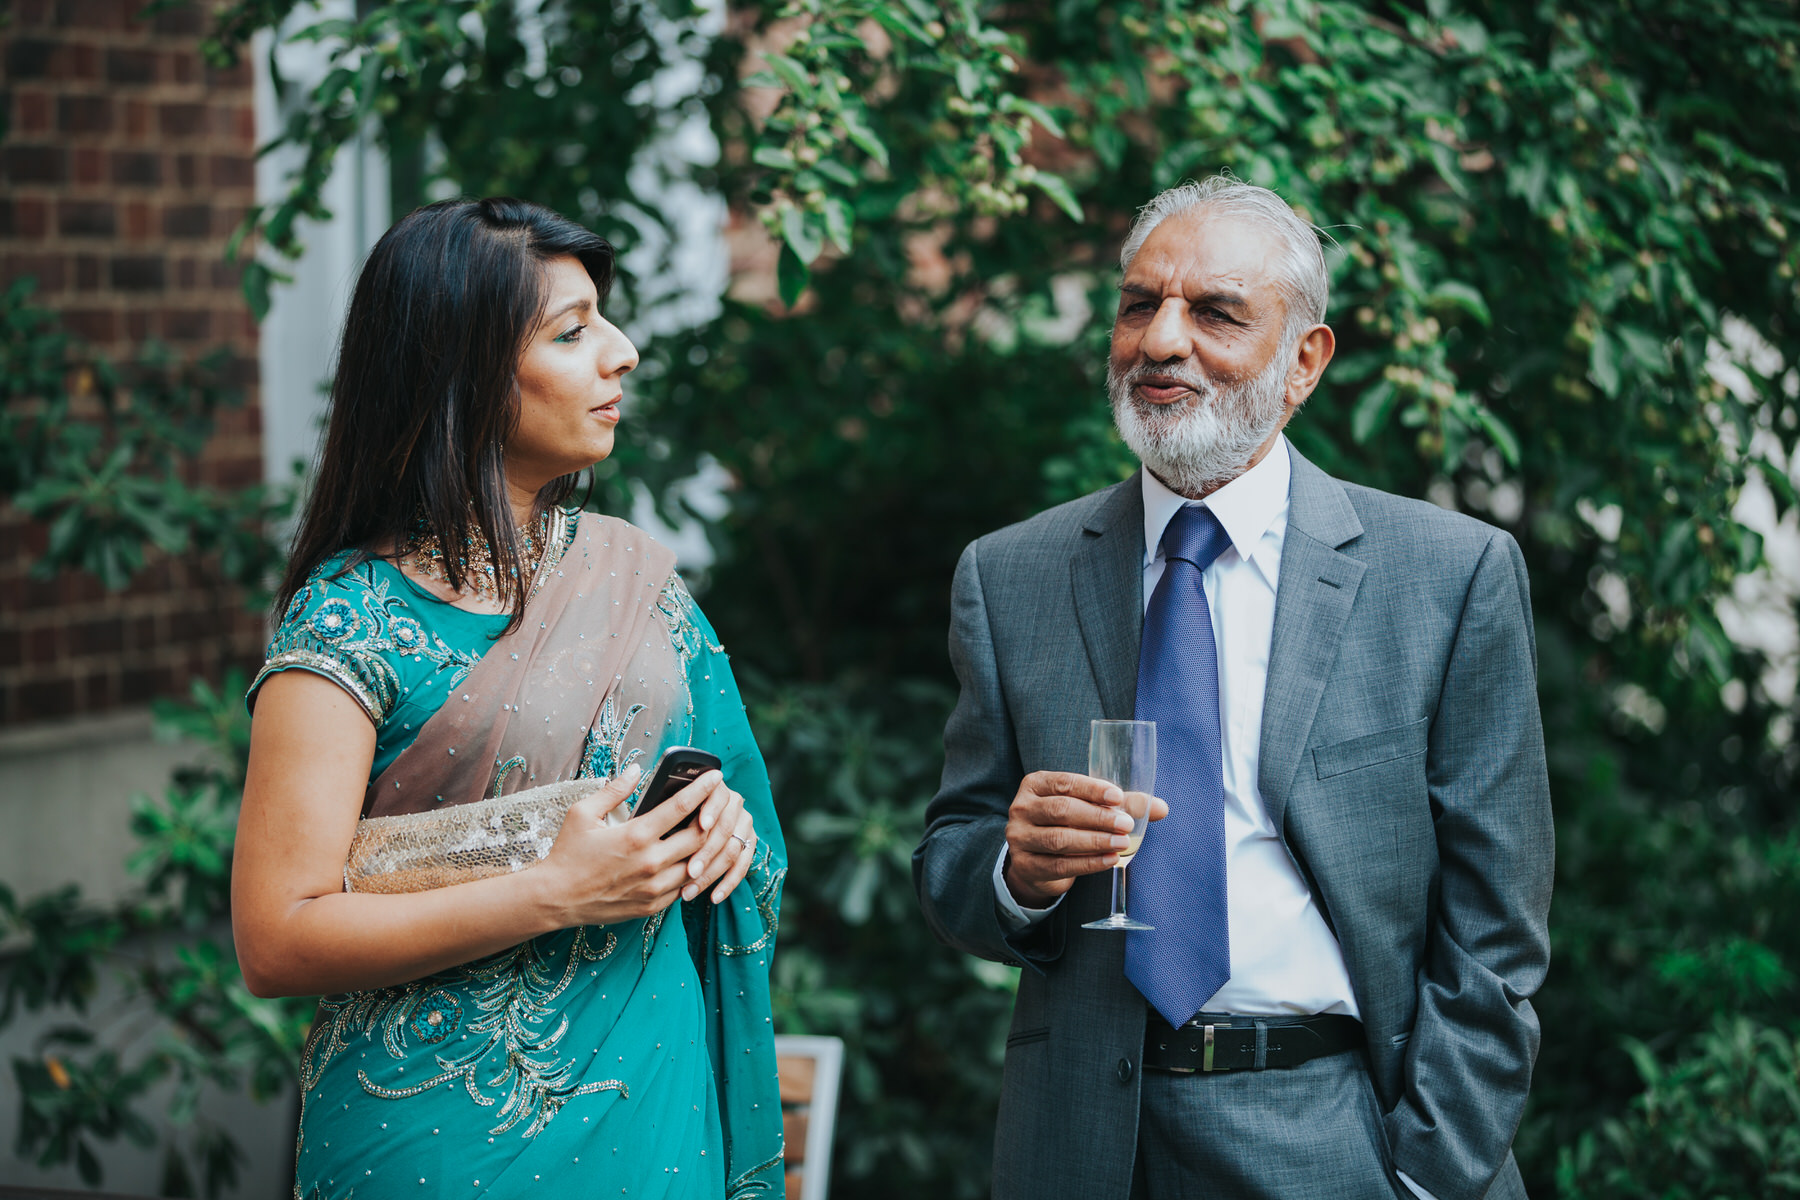 124-Anglo-Asian-London-Wedding-guest-reportage-photos.jpg